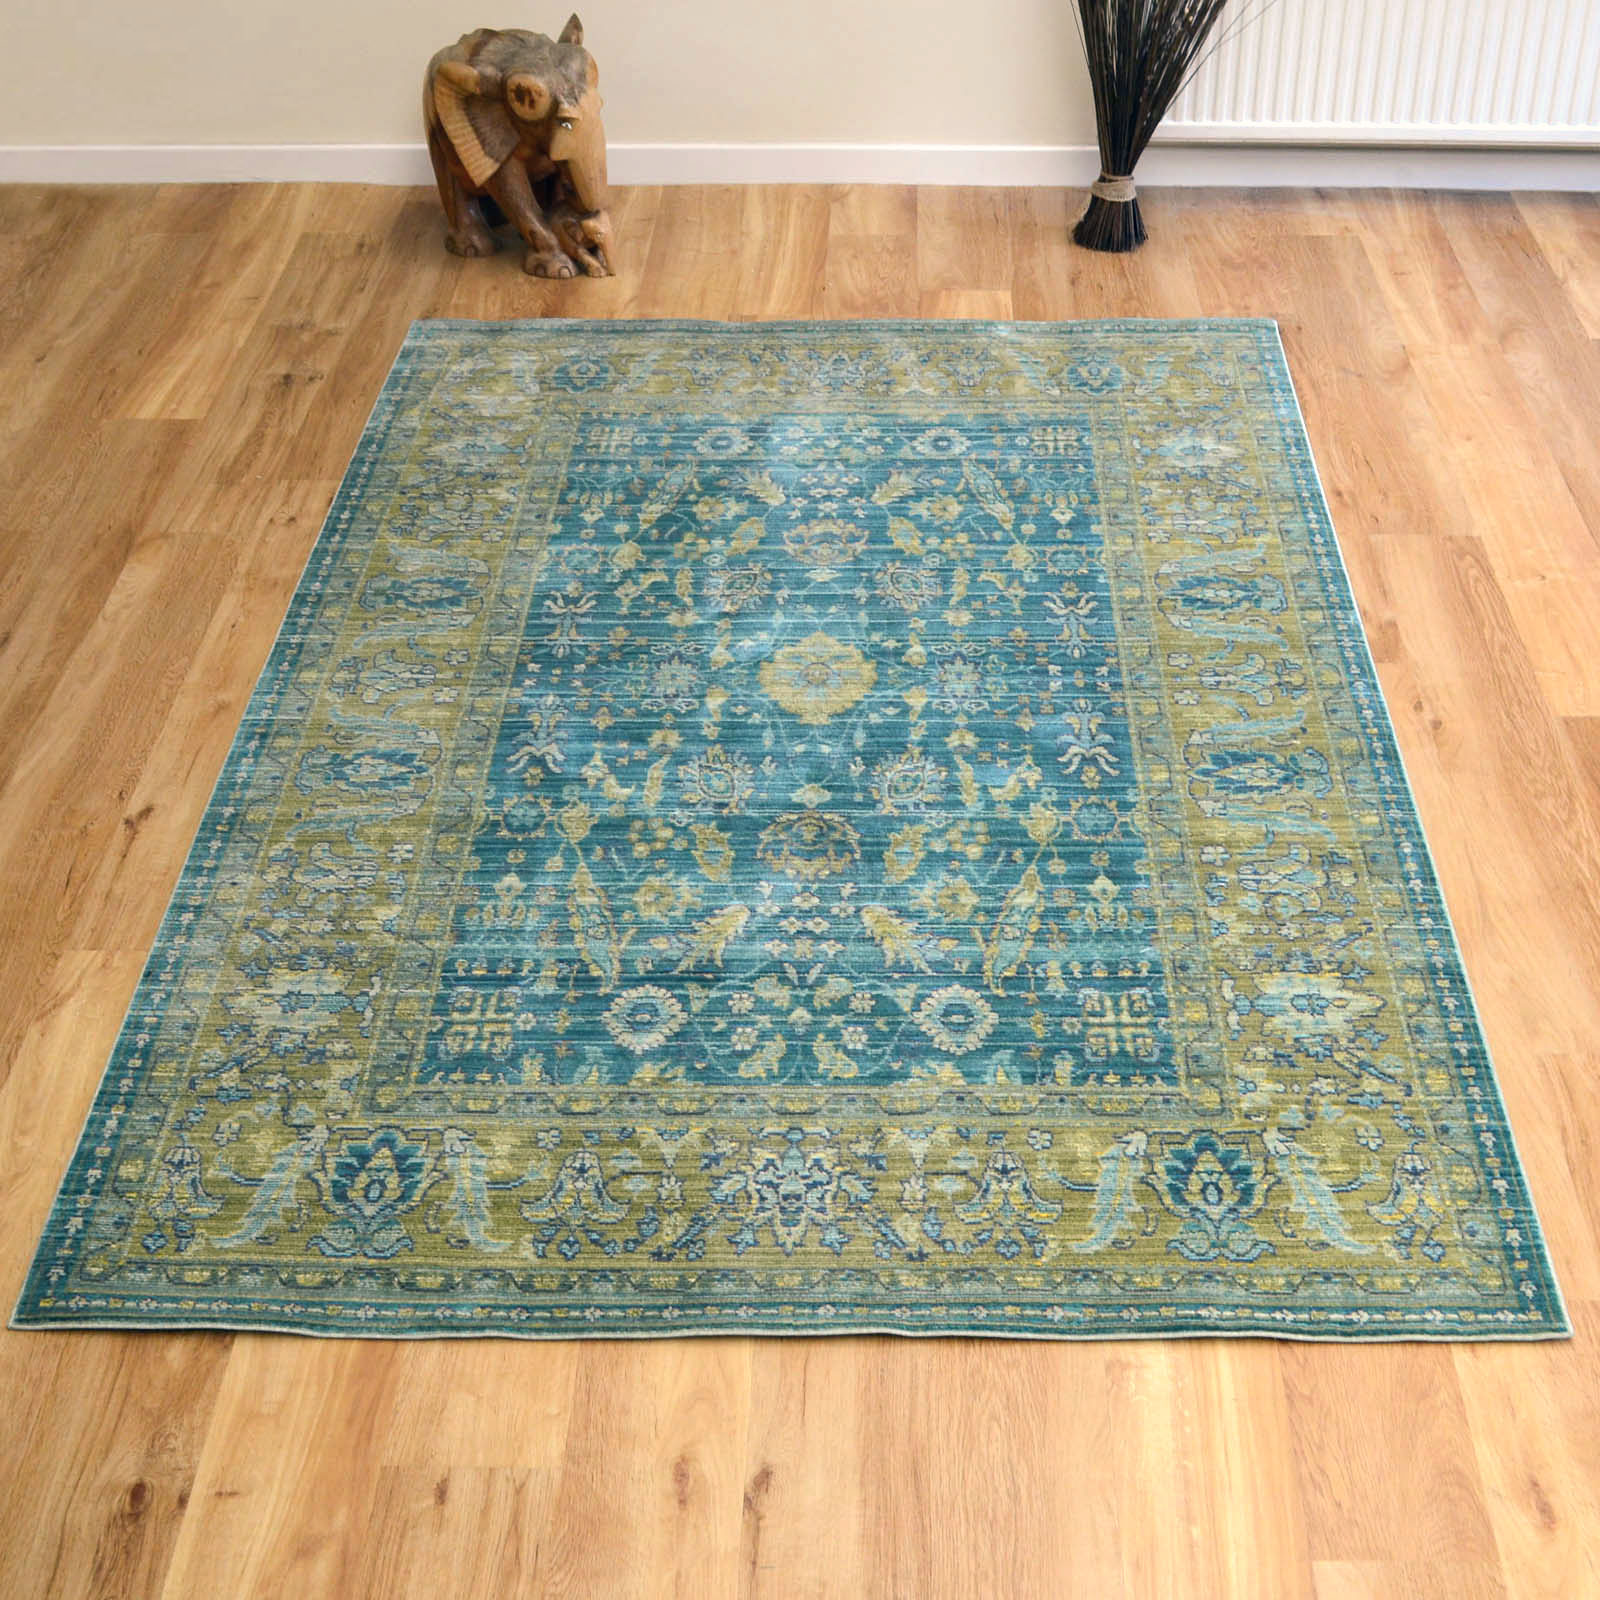 Aqua Silk Traditional Rugs E309c In Green And Blue